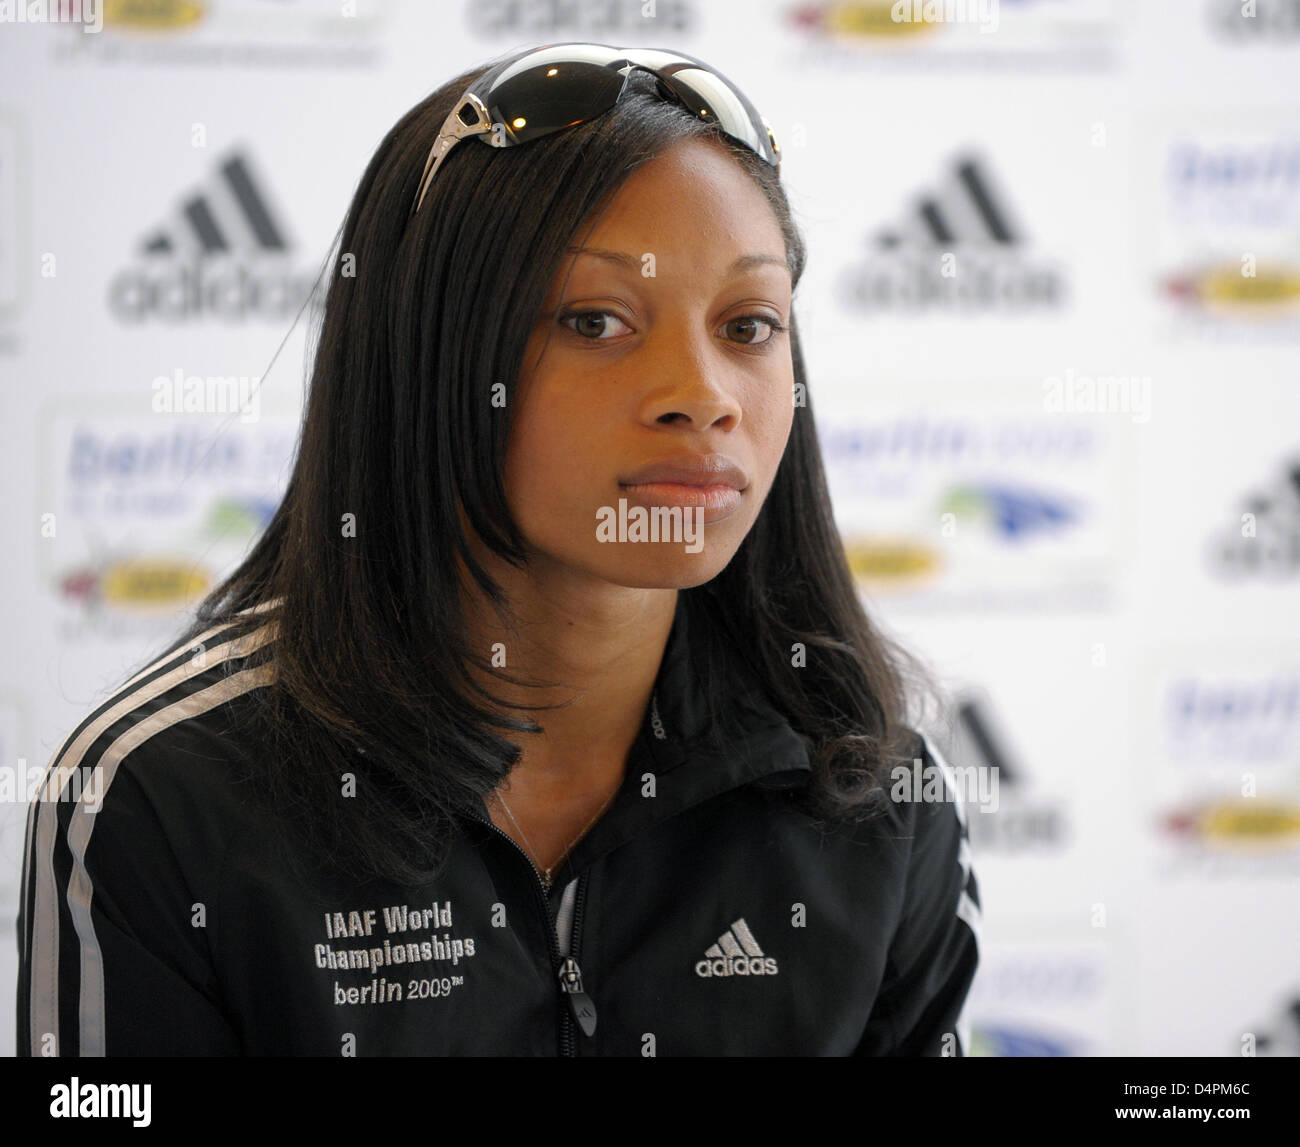 US sprinter Allyson Felix poses at a press conference at the 12th IAAF World Championships in Athletics in Berlin, - Stock Image